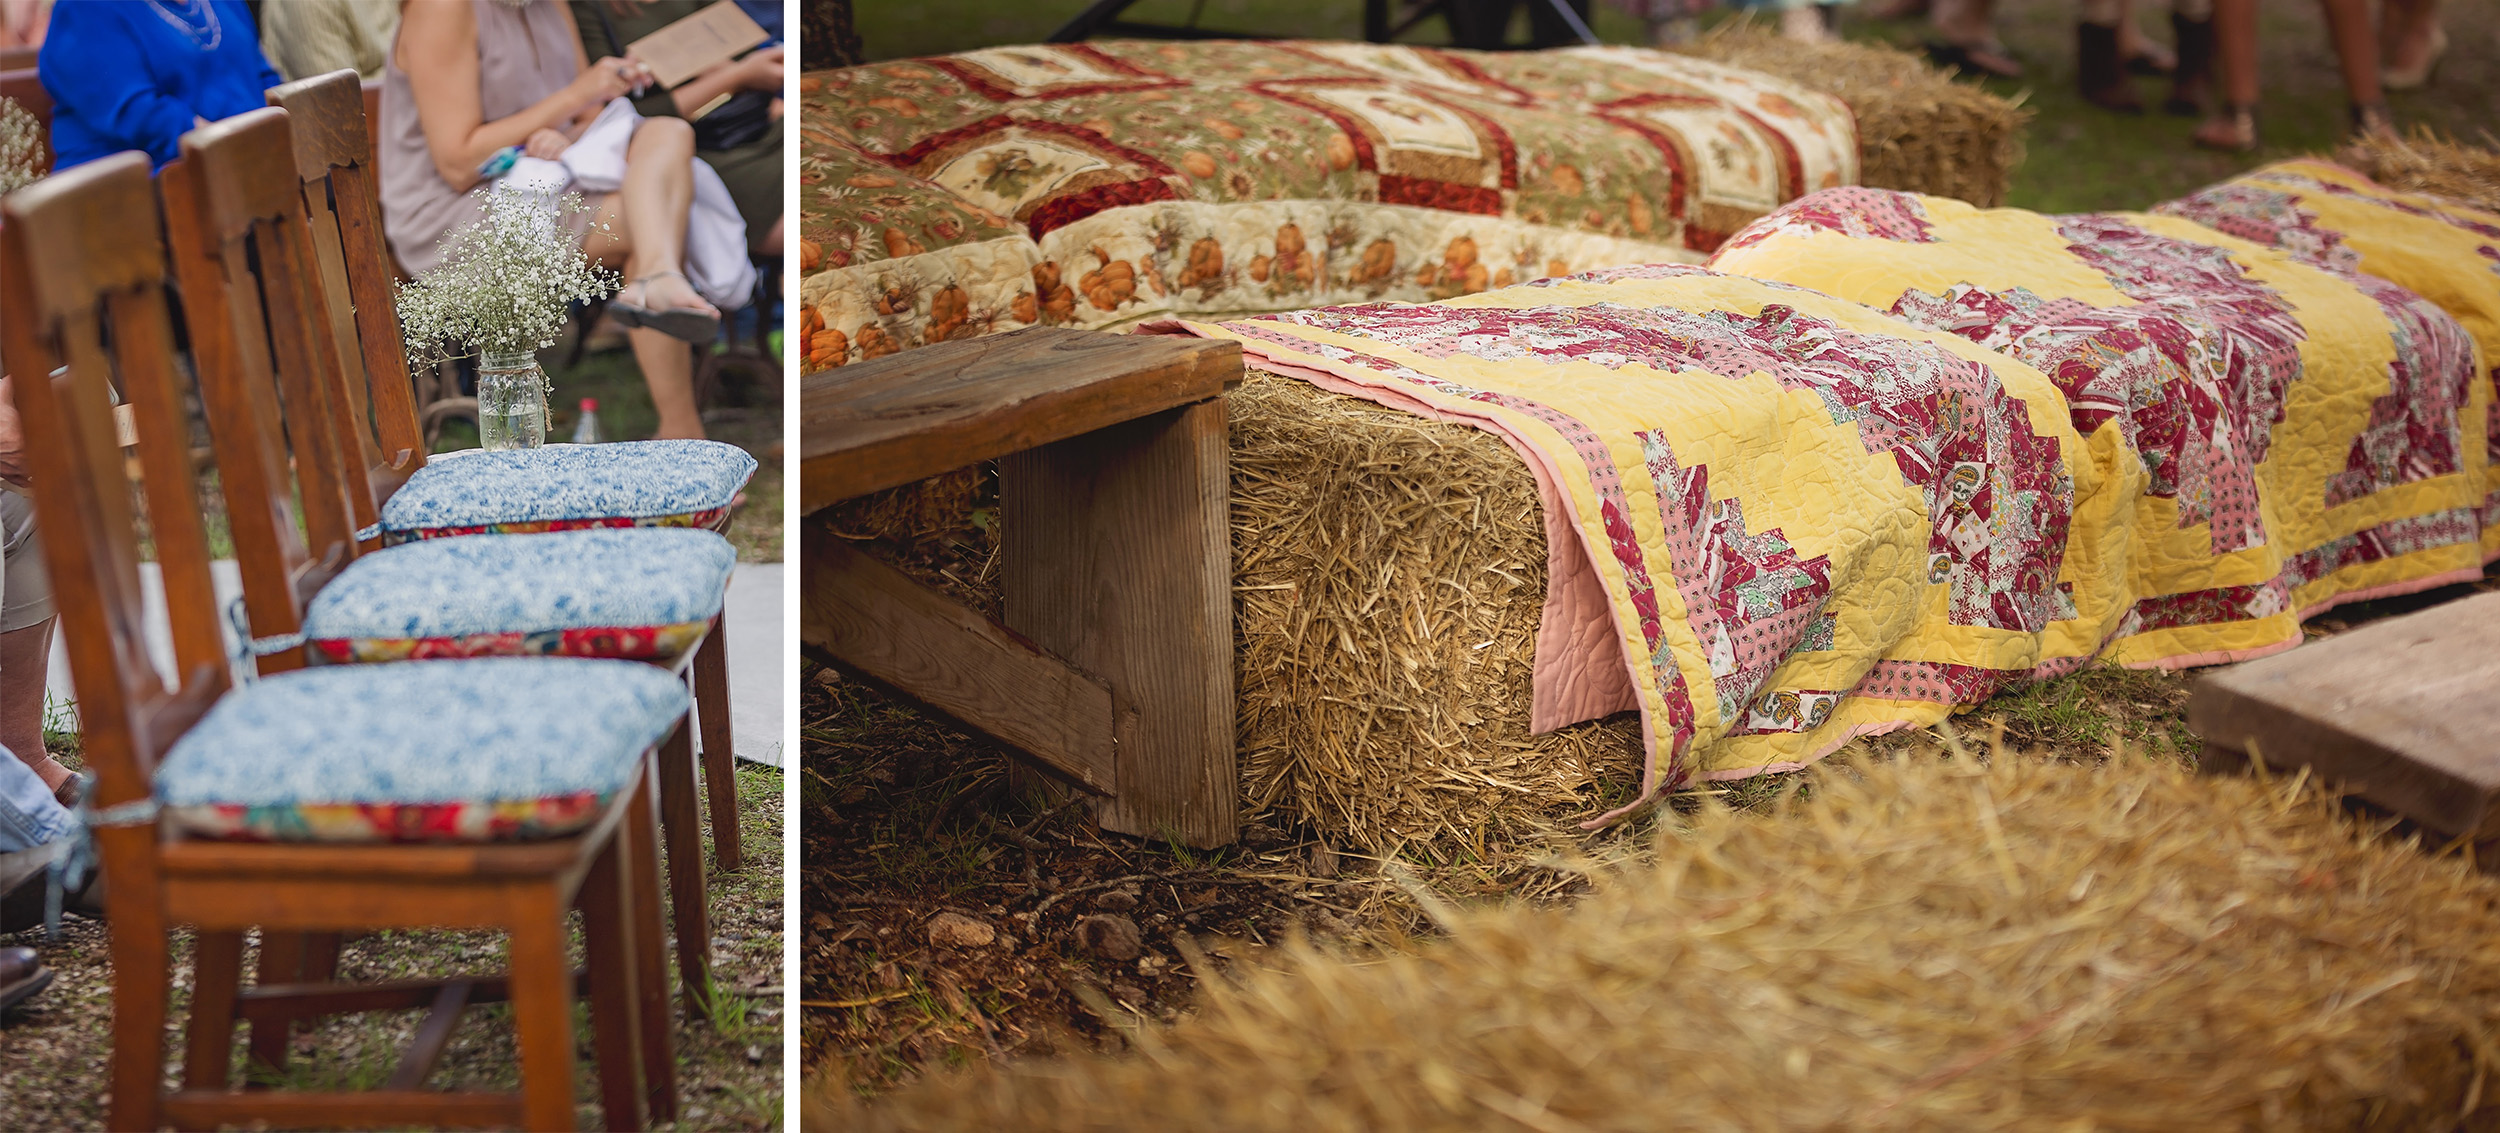 Quilts cover hay bails and dining chairs are re-purposed for wedding ceremony seating in the woods.